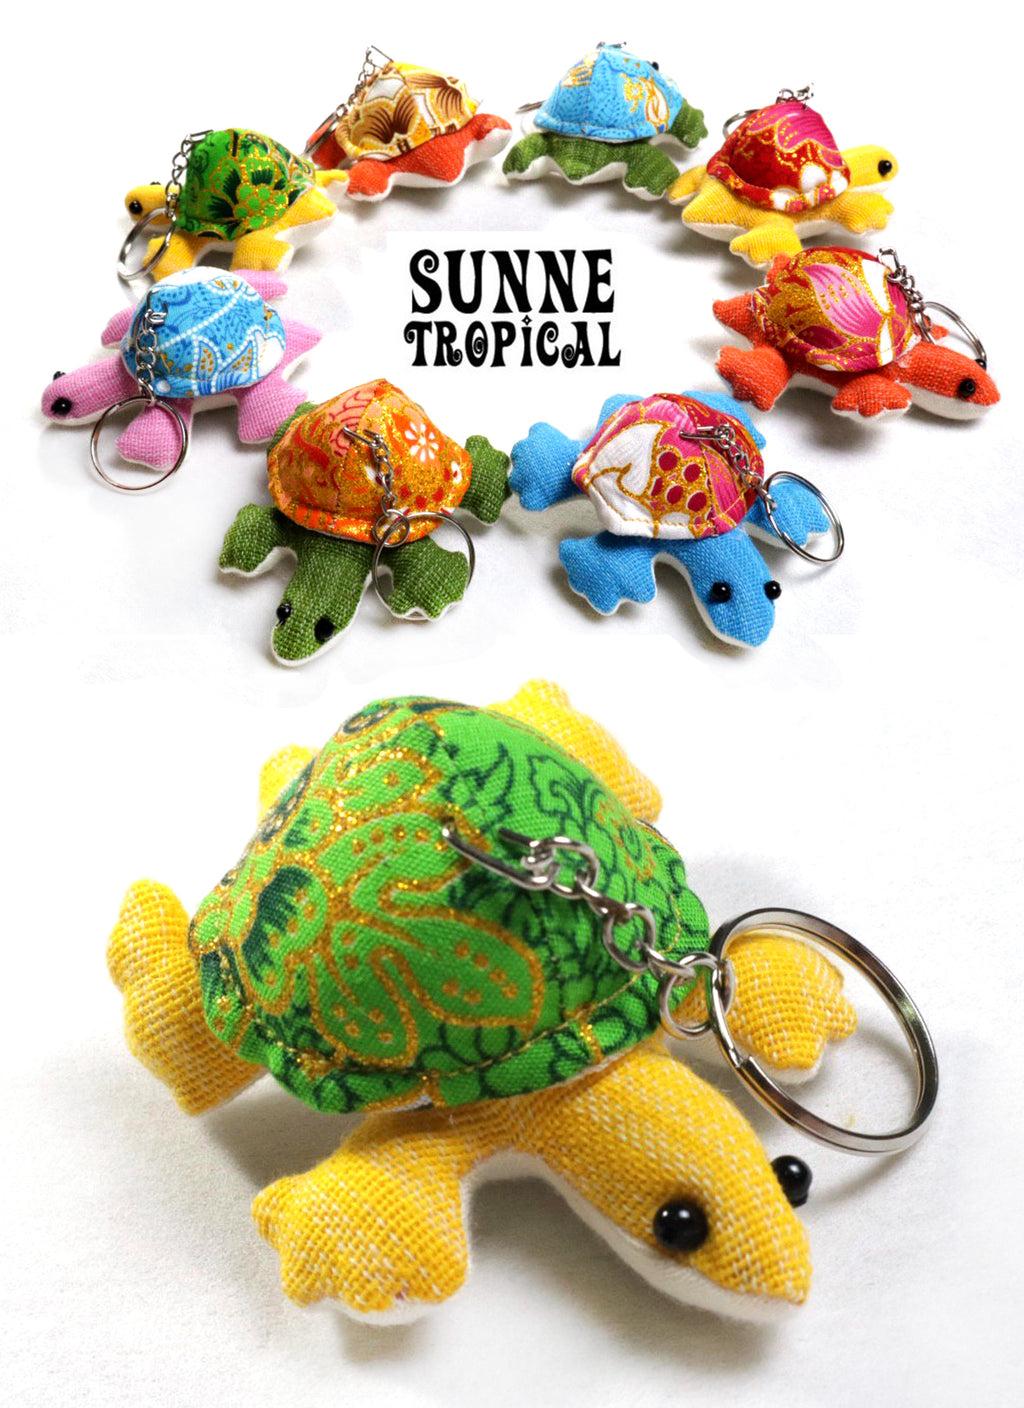 UPCYCLE Handmade Fabric Keychain ANIMAL Charm Key Rings Holder Bag Accessories Handmade Gift! so CUTE RANDOM COLOR (Pack of 4) - TORTOISE & TURTLE